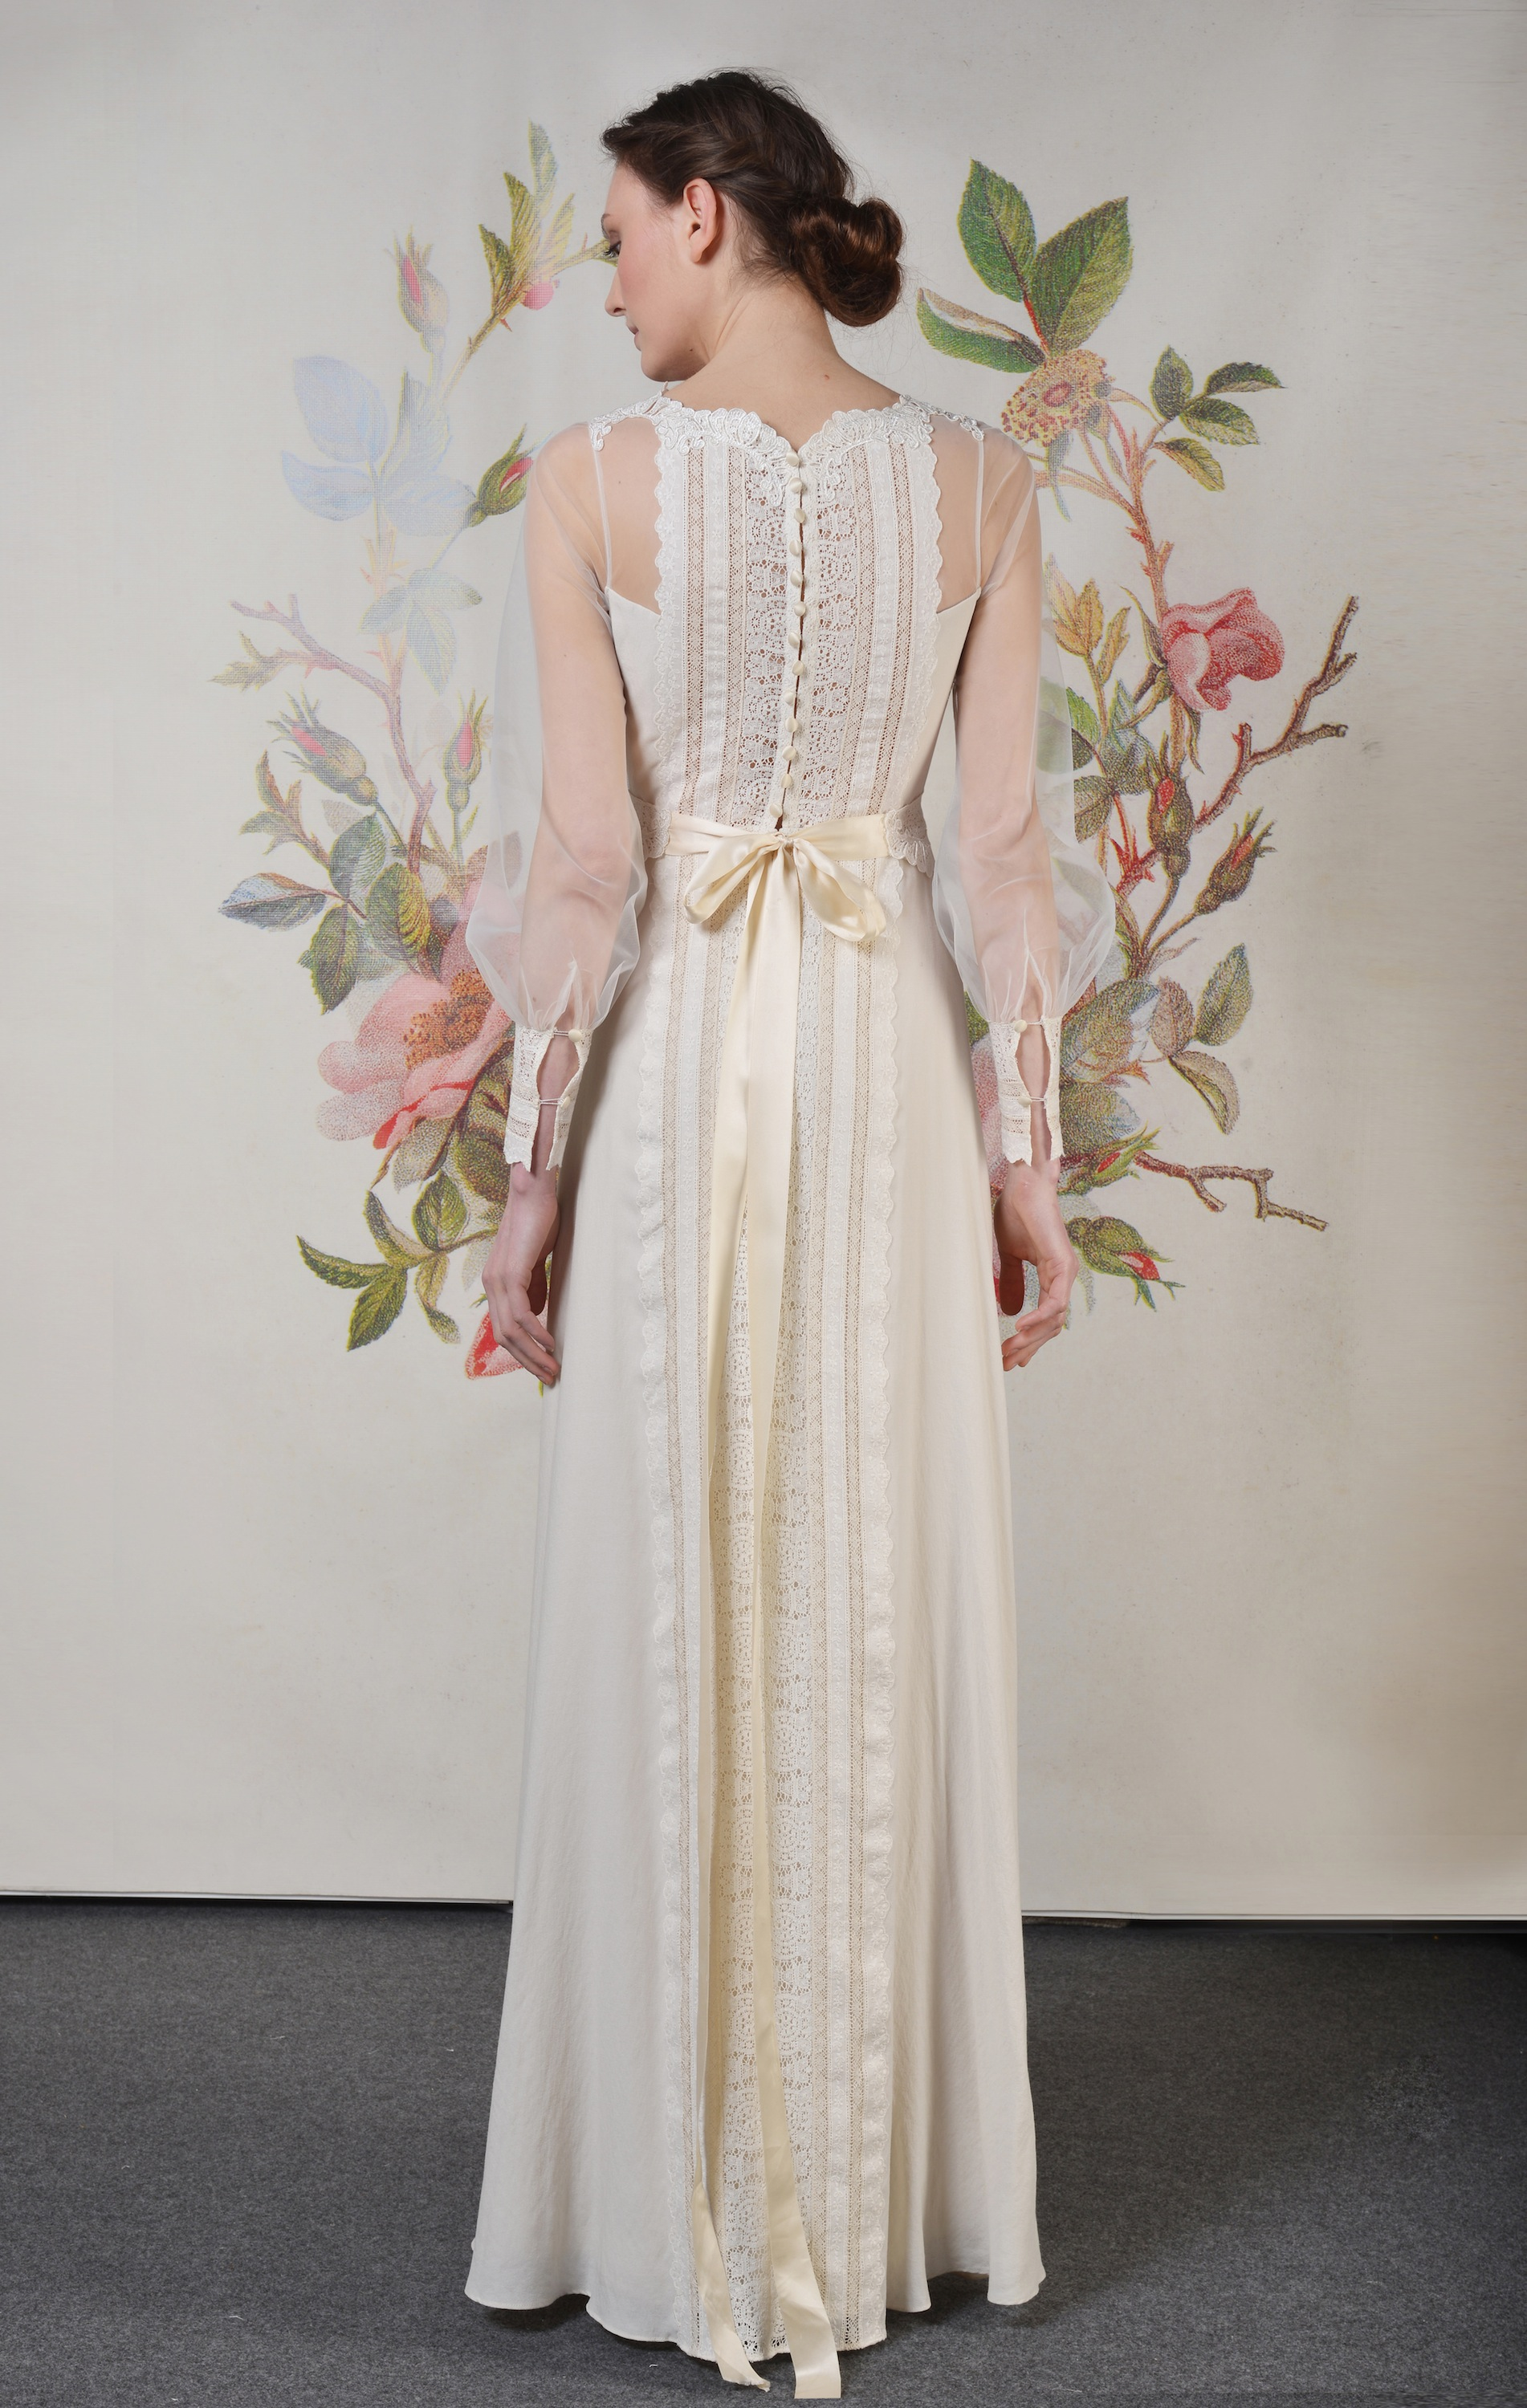 Claire pettibone spring summer 2014 wedding dress delaney for Wedding dress claire pettibone